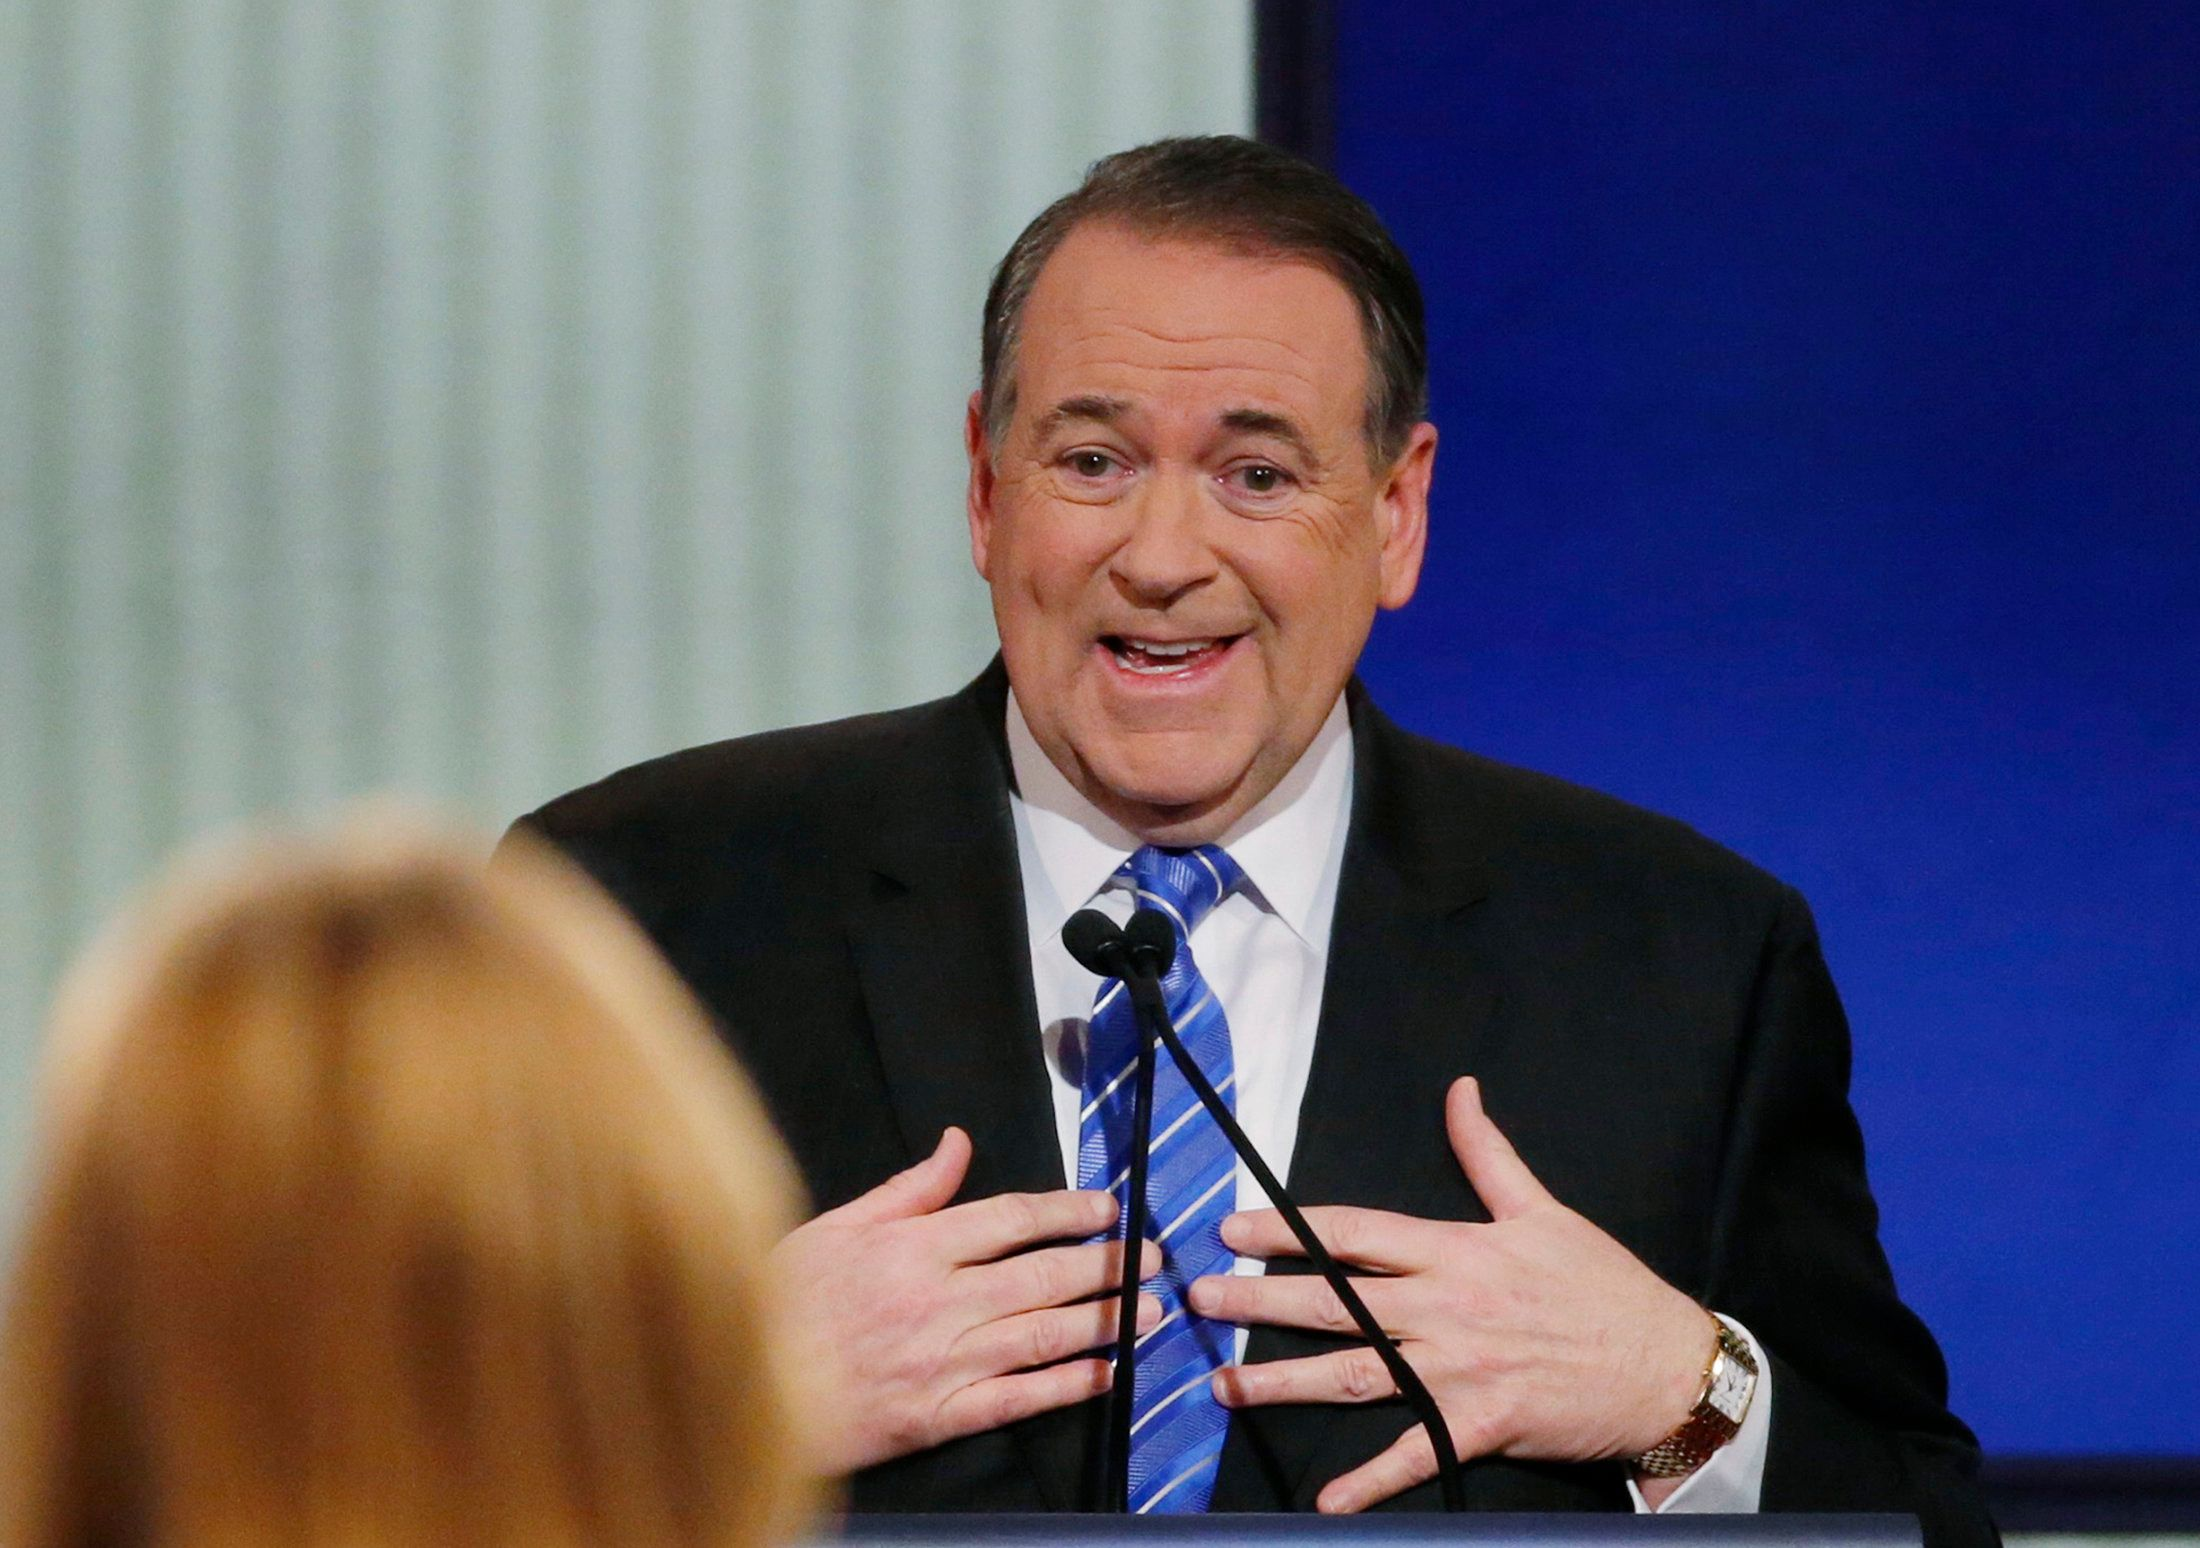 Republican U.S. presidential candidate and former Arkansas Governor Mike Huckabee speaks during a forum for the lower polling candidates held by Fox News before the U.S. Republican presidential candidates debate in Des Moines, Iowa in this January 28, 2016 file photo. Mike Huckabee suspended his bid for the Republican presidential nomination on February 1, 2016 night, the former Arkansas governor announced on Twitter after garnering little support in the Iowa caucuses.   REUTERS/Carlos Barria/Files